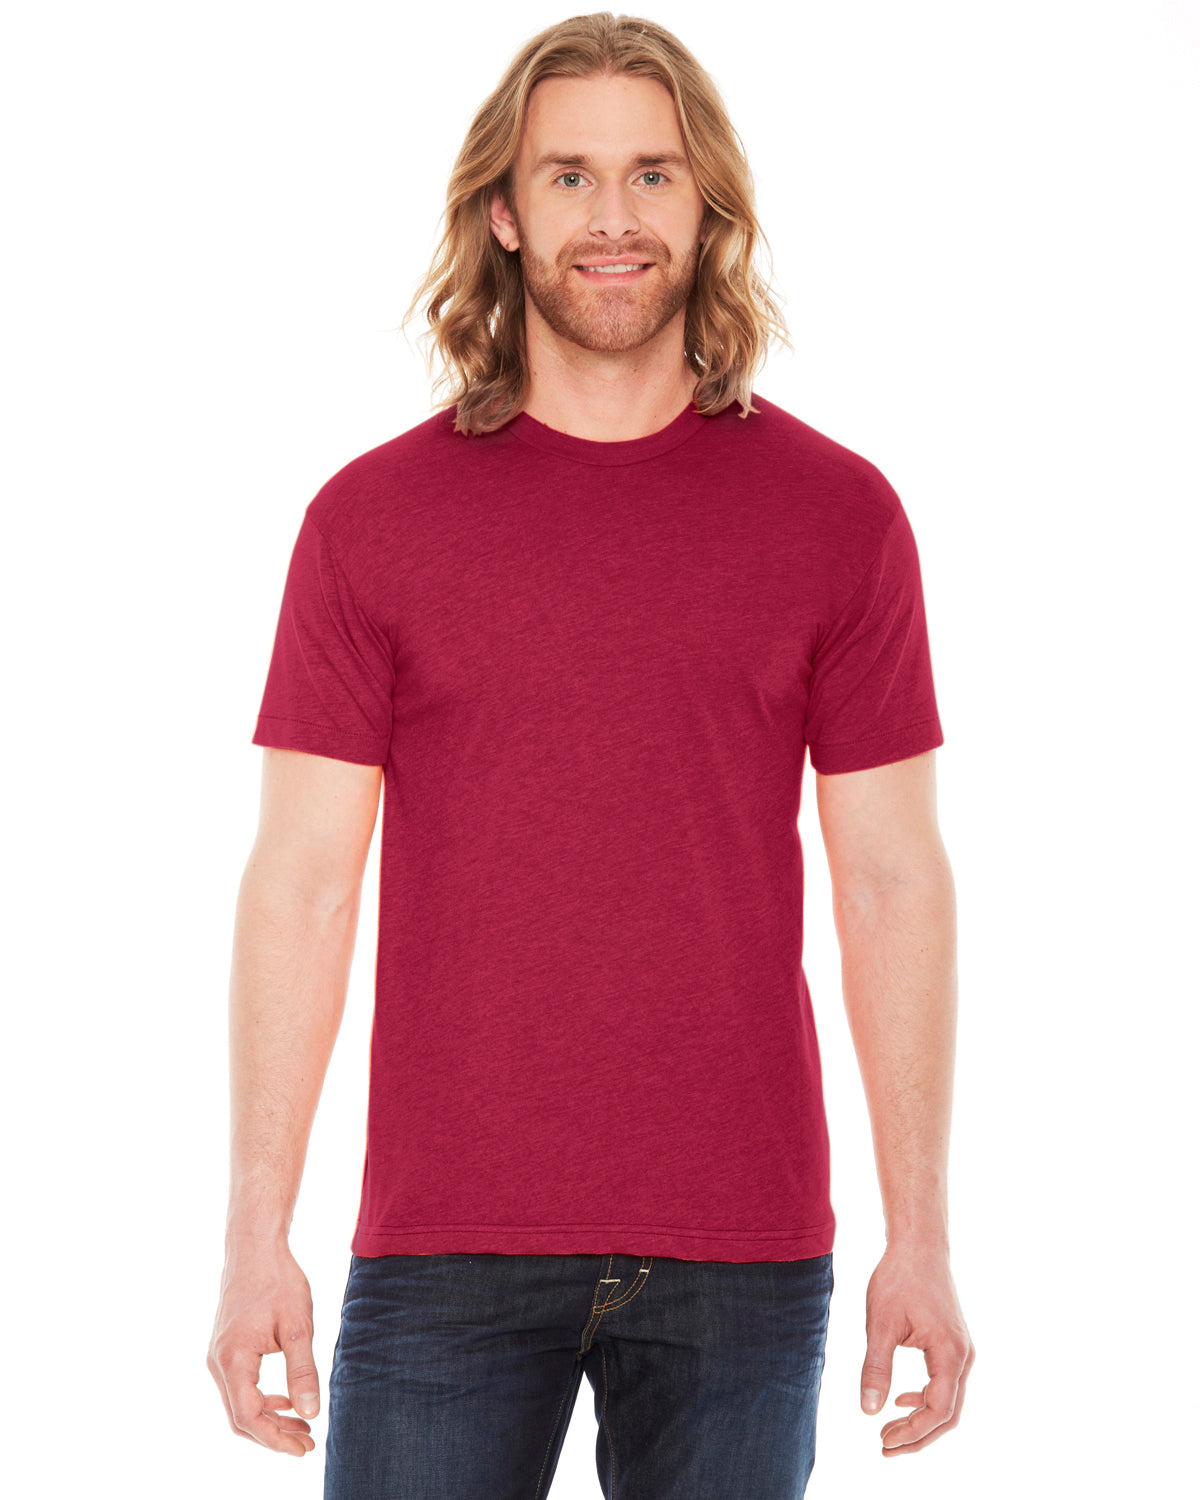 AMERICAN APPAREL UNISEX POLY COTTON SHORT SLEEVE CREW NECK T-SHIRT